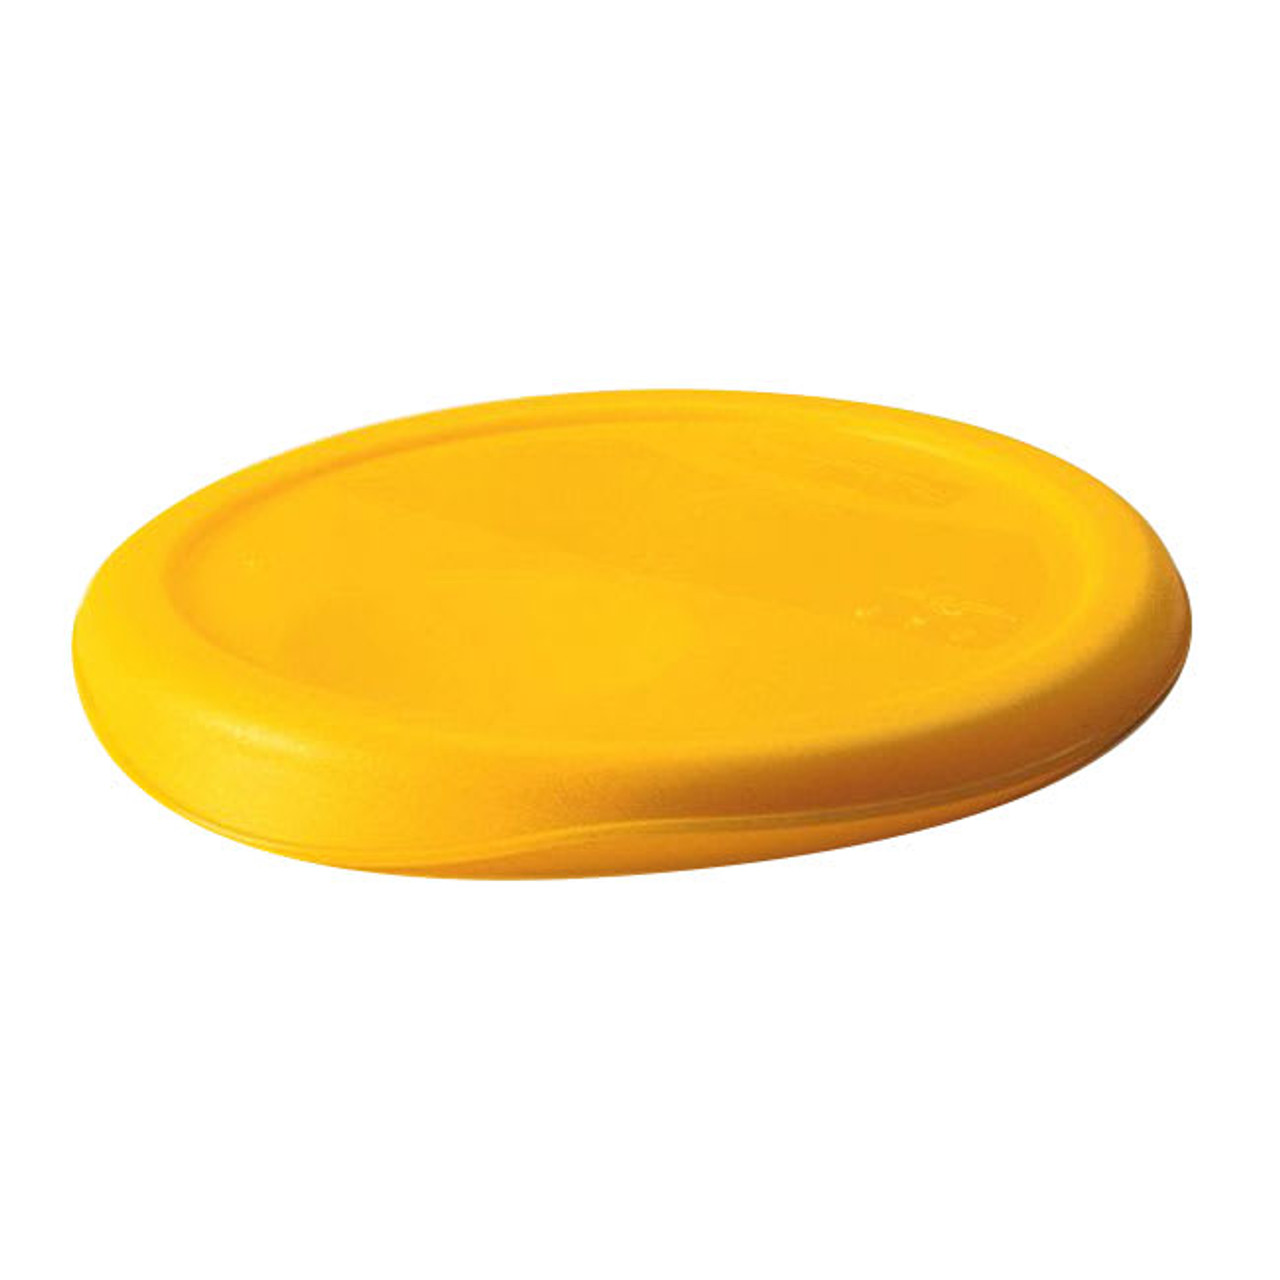 Rubbermaid Round Container Lid - Small Yellow - FG572200YEL